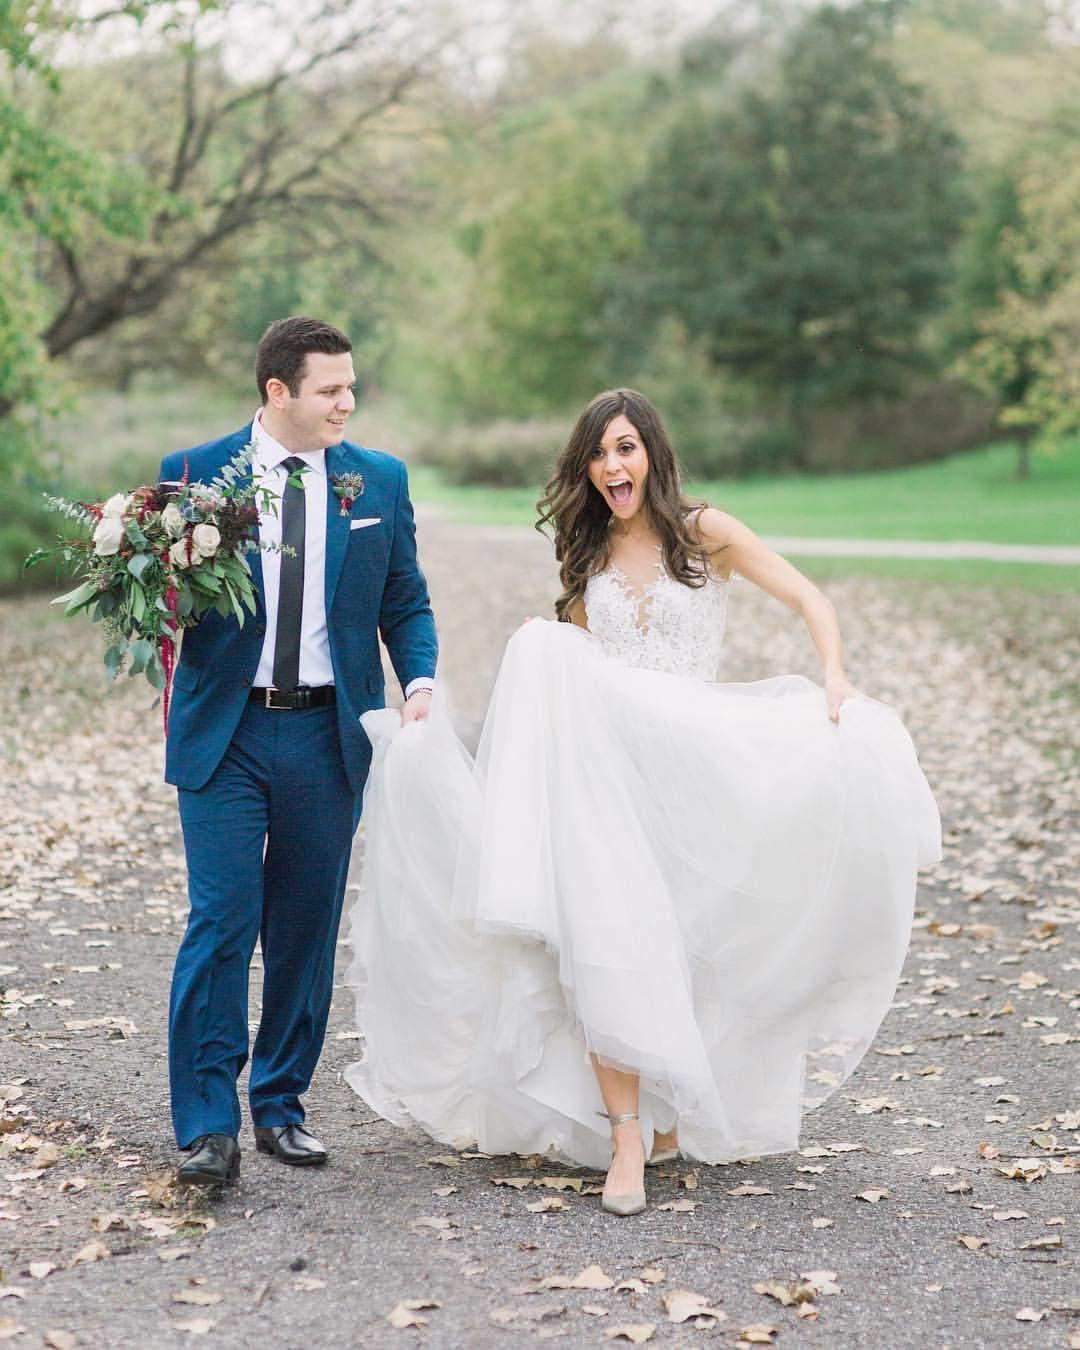 Best wedding dresses of all time  When you made it official had the best time taking your wedding